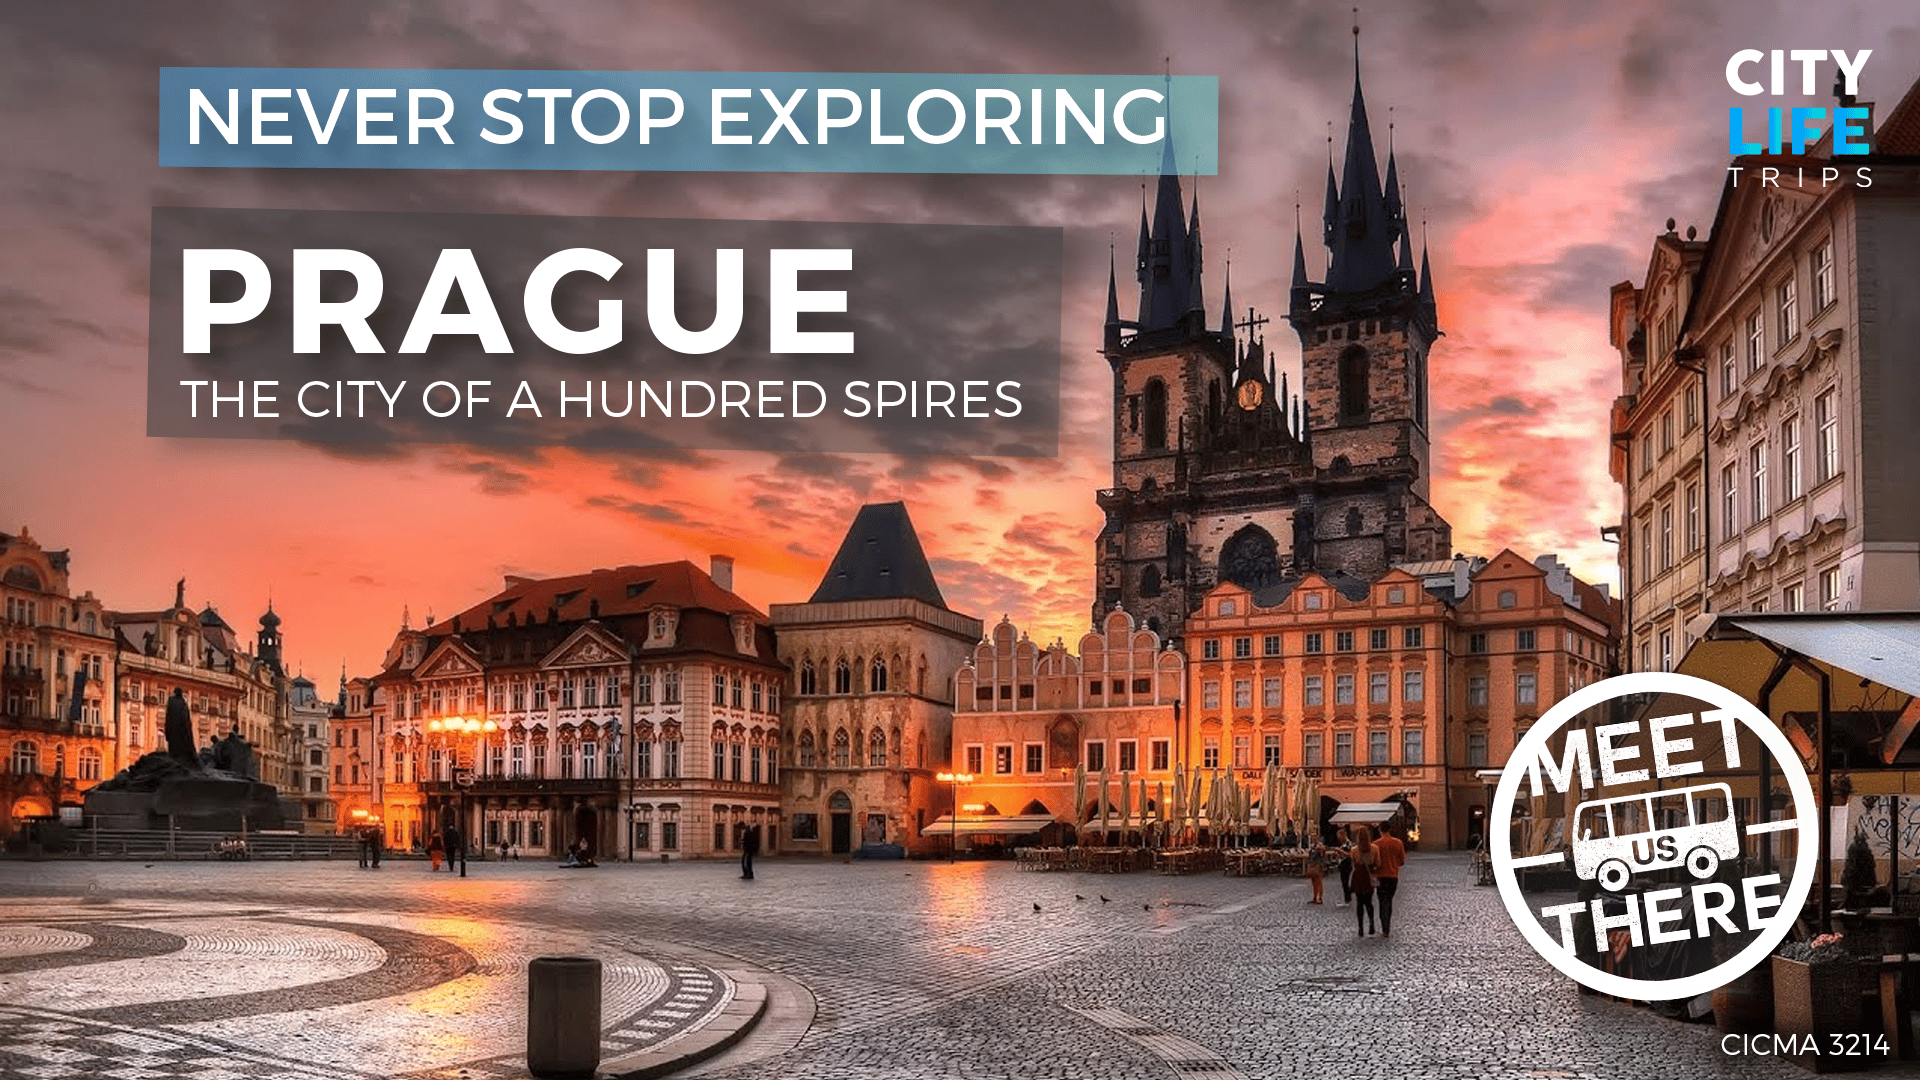 Prague - The City of a Hundred Spires (Meet us There)